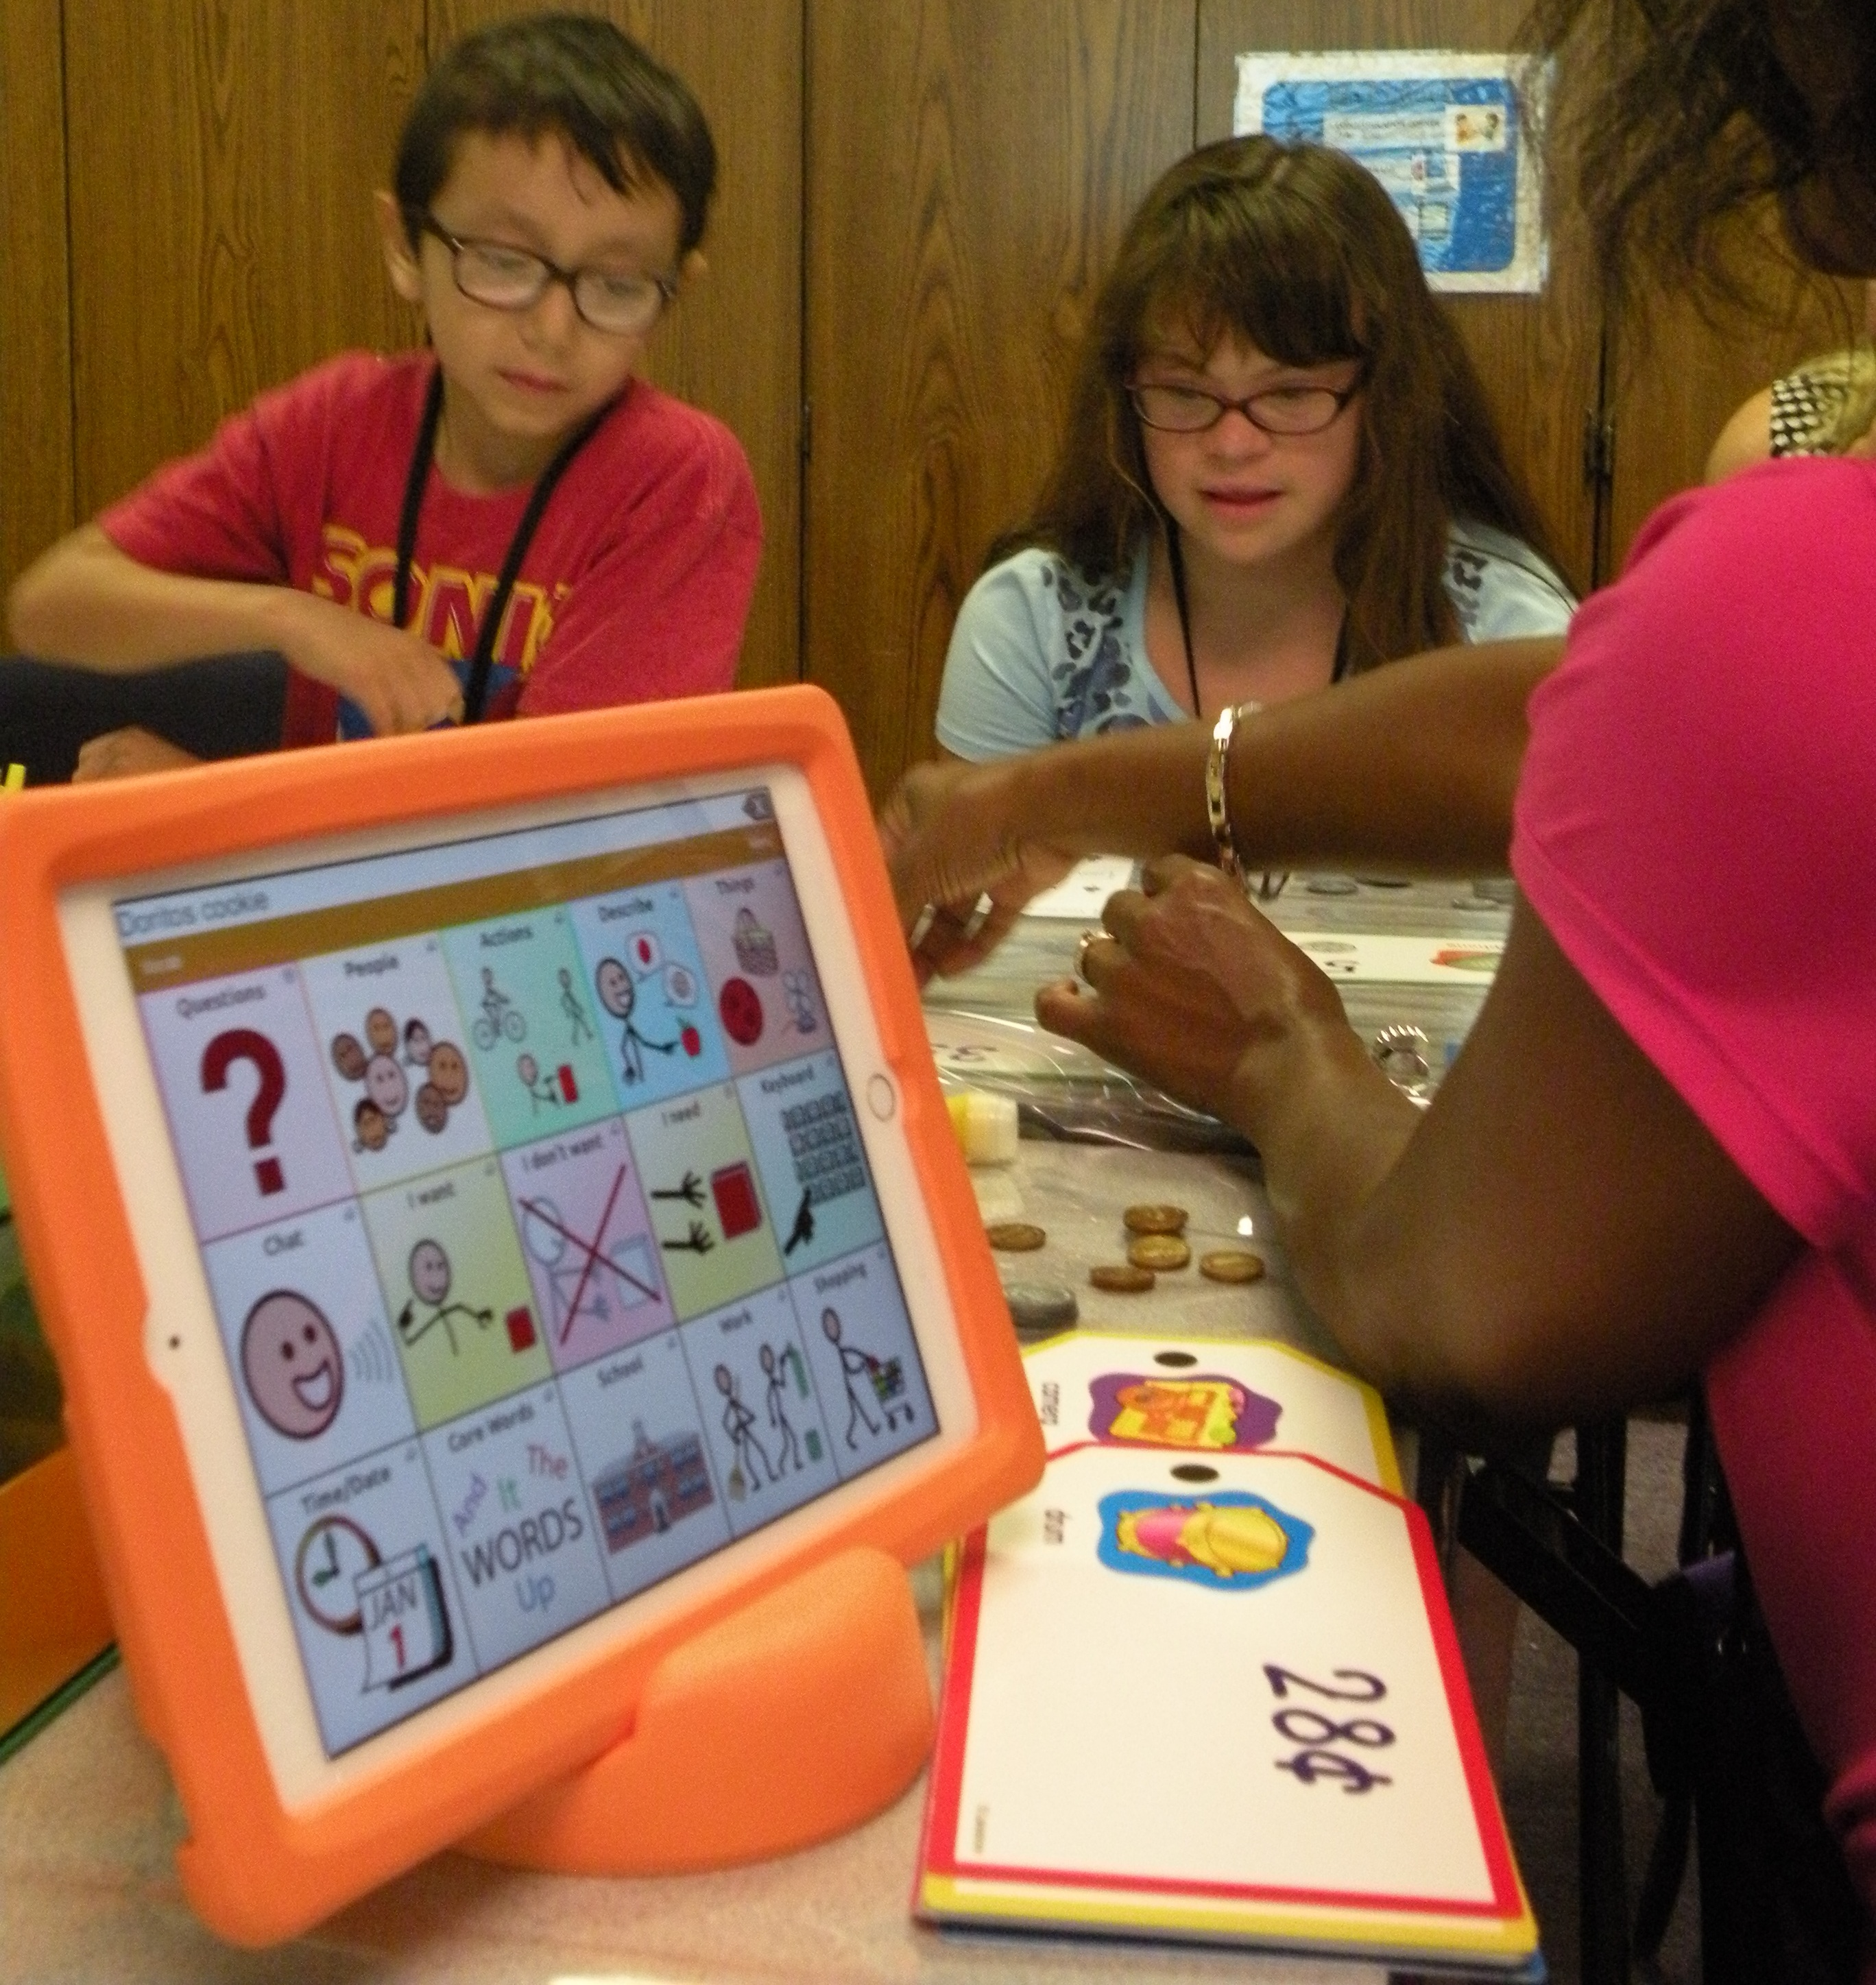 An orange tablet sized AAC device with different stick figures on it and two children and a teacher sitting at a desk